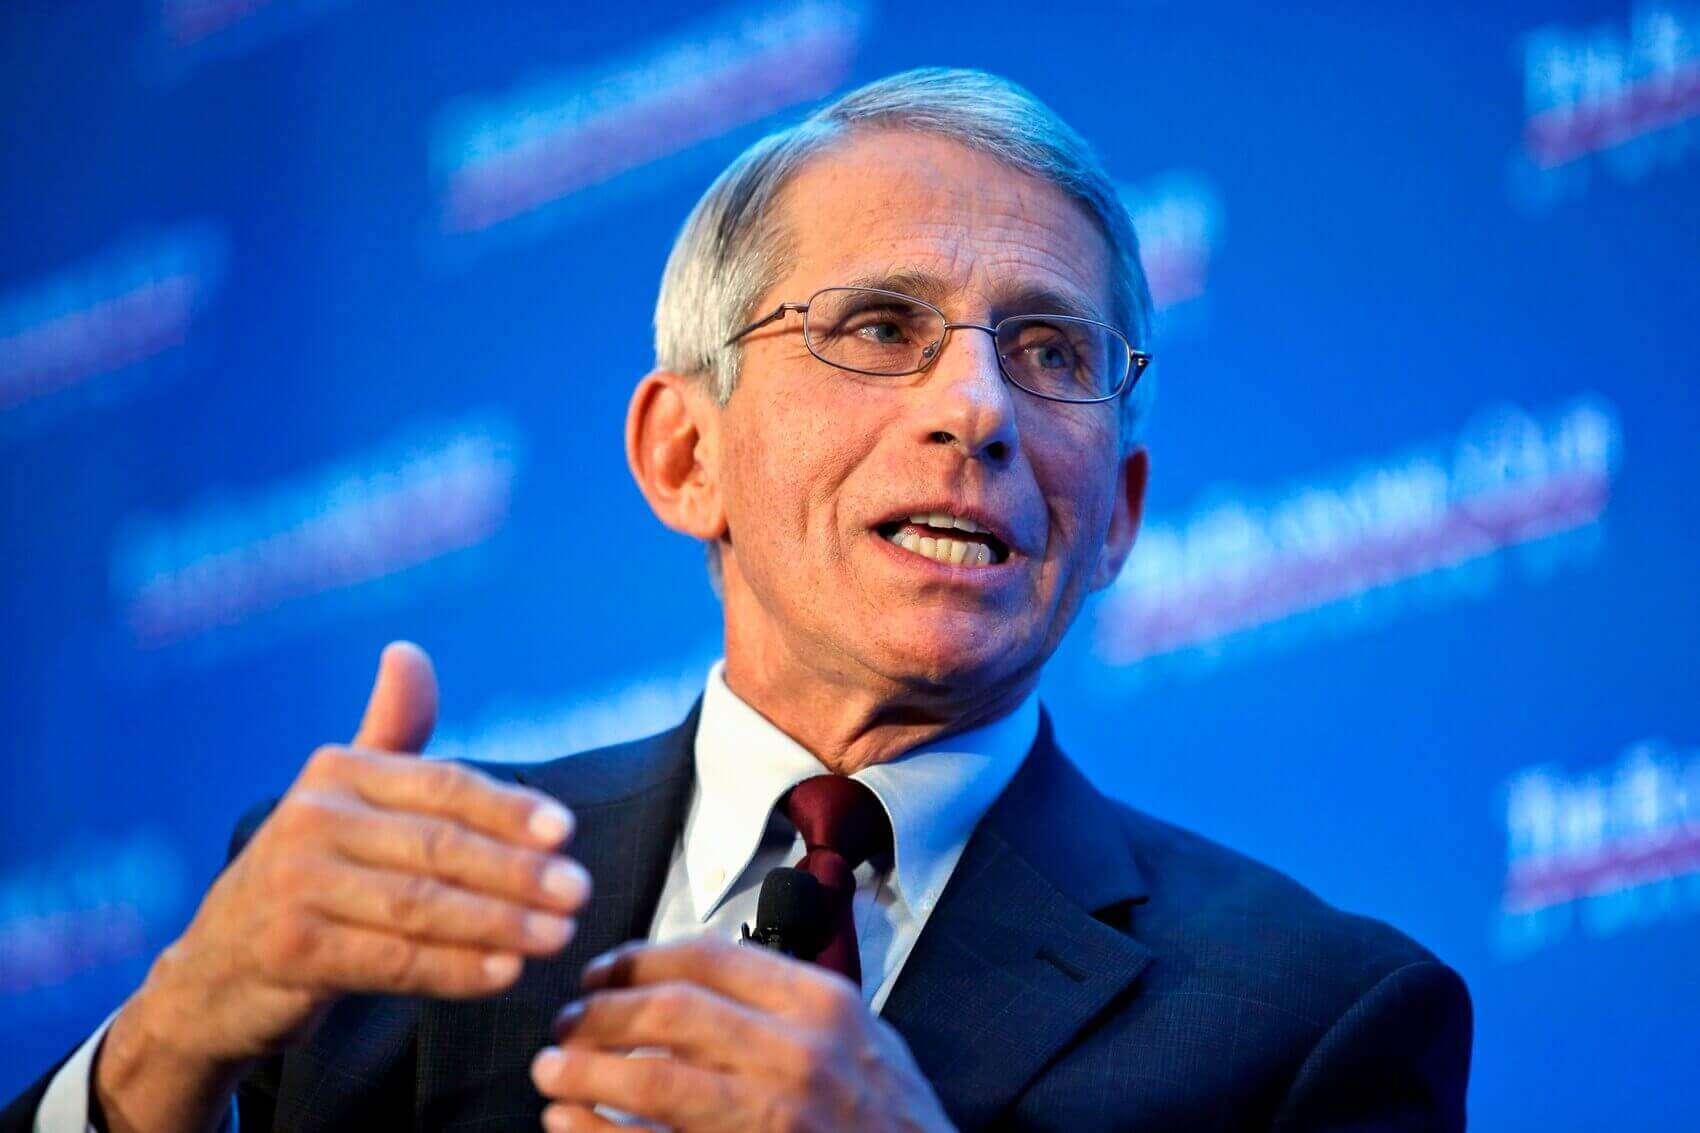 Dr Anthony Fauci | The Not Old - Better Show